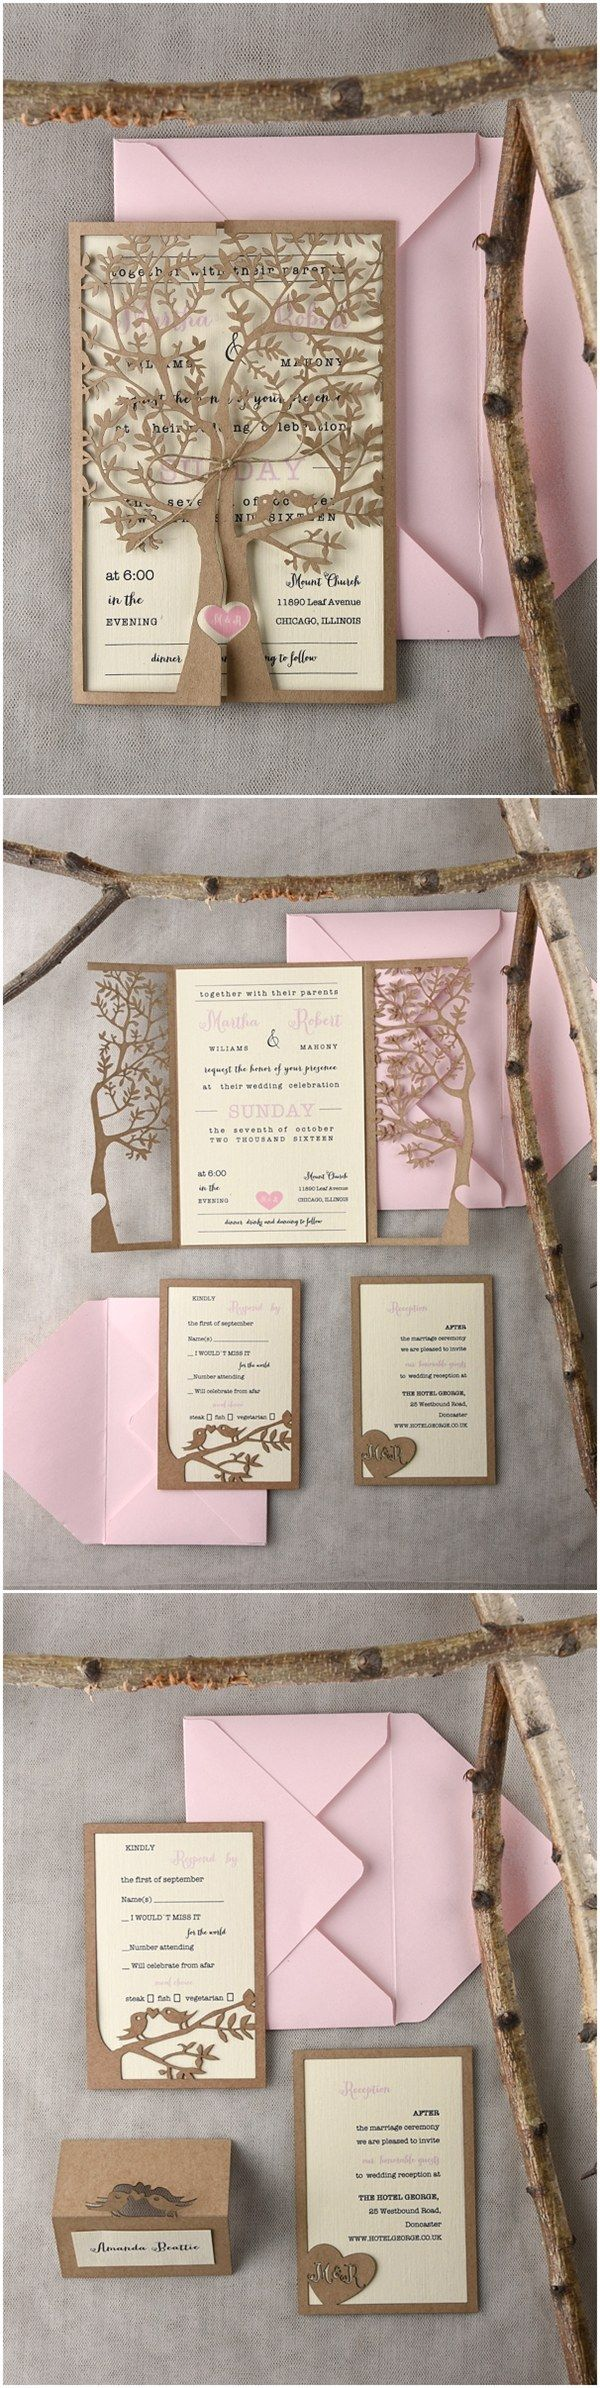 242 Best Invitations Monograms Images On Pinterest Affordable